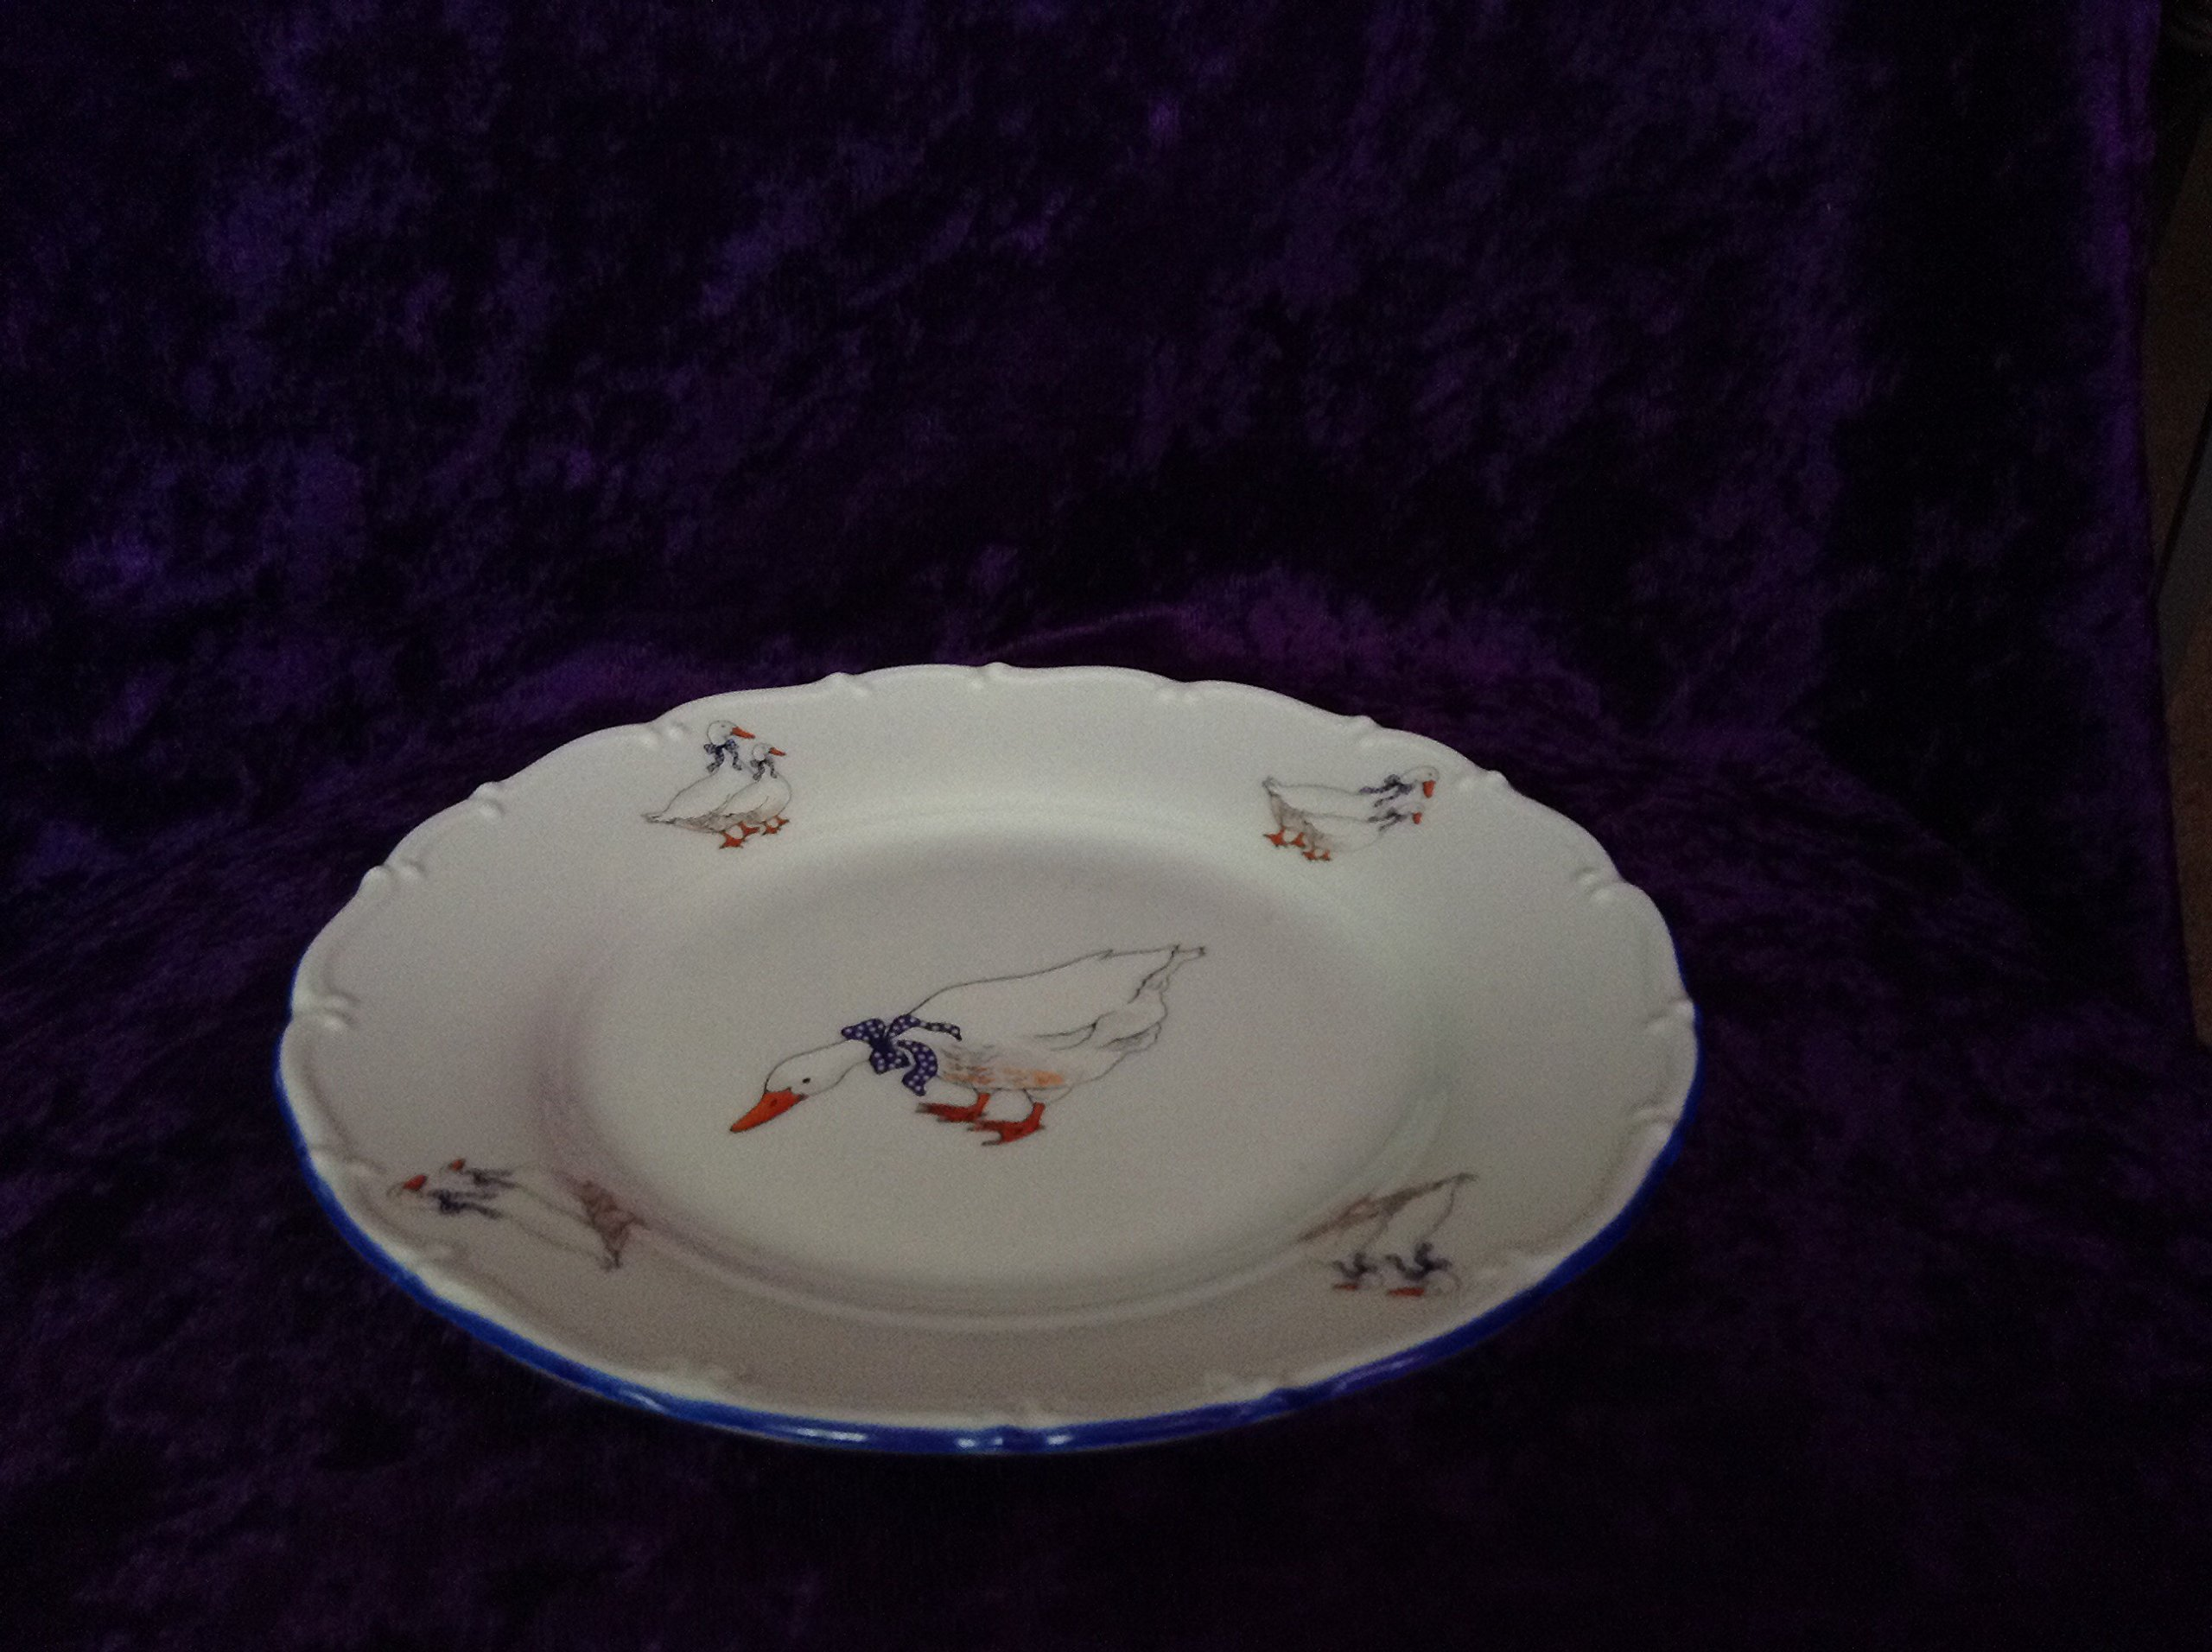 Plate set for 6 pers., Czech porcelain, Geese by Geese